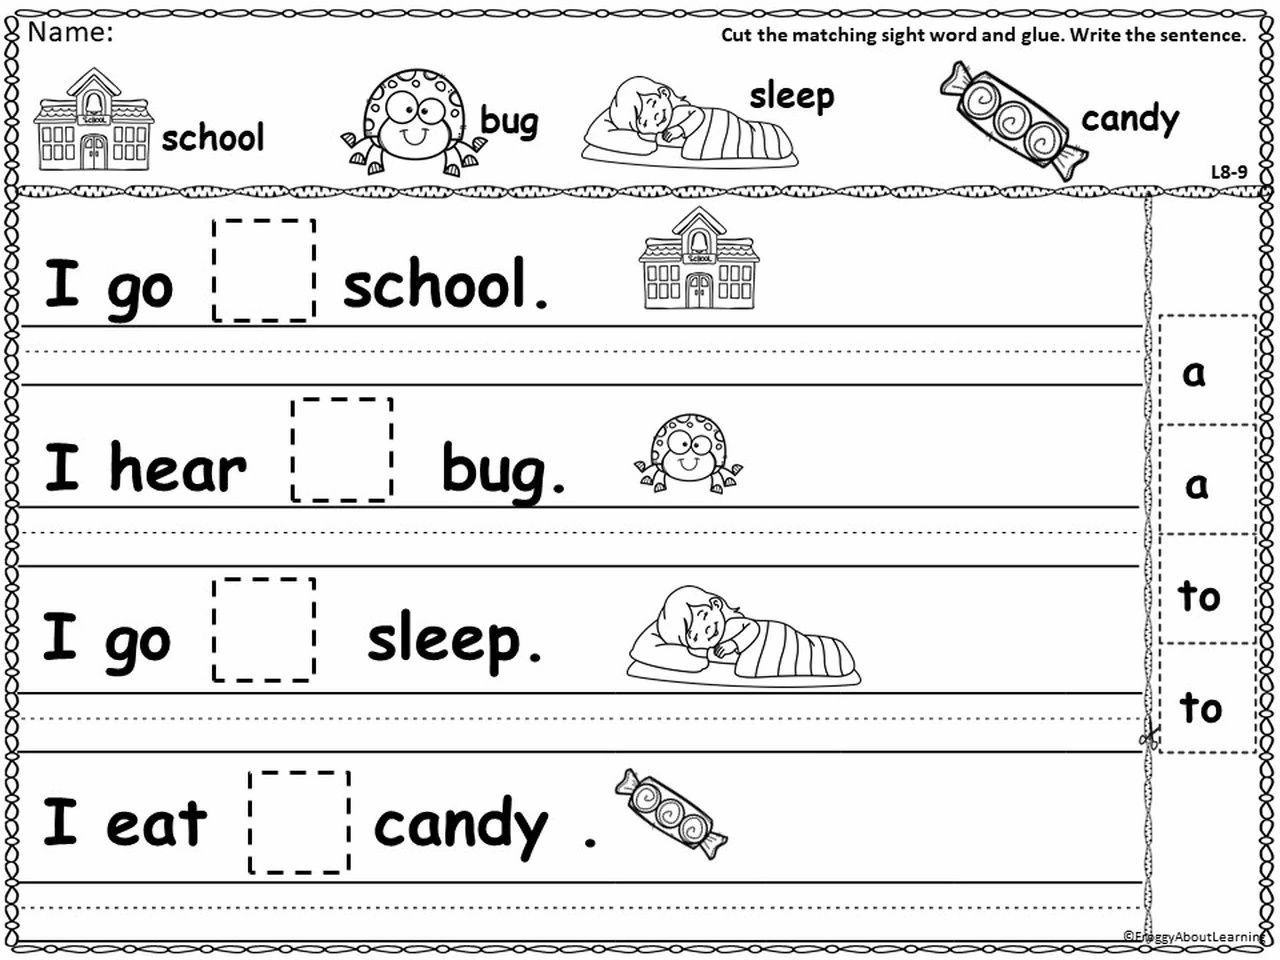 Kinder Sentence Fill In And Sentence Models Sight Word Practice Teaching Writing Word Sentences [ 960 x 1280 Pixel ]